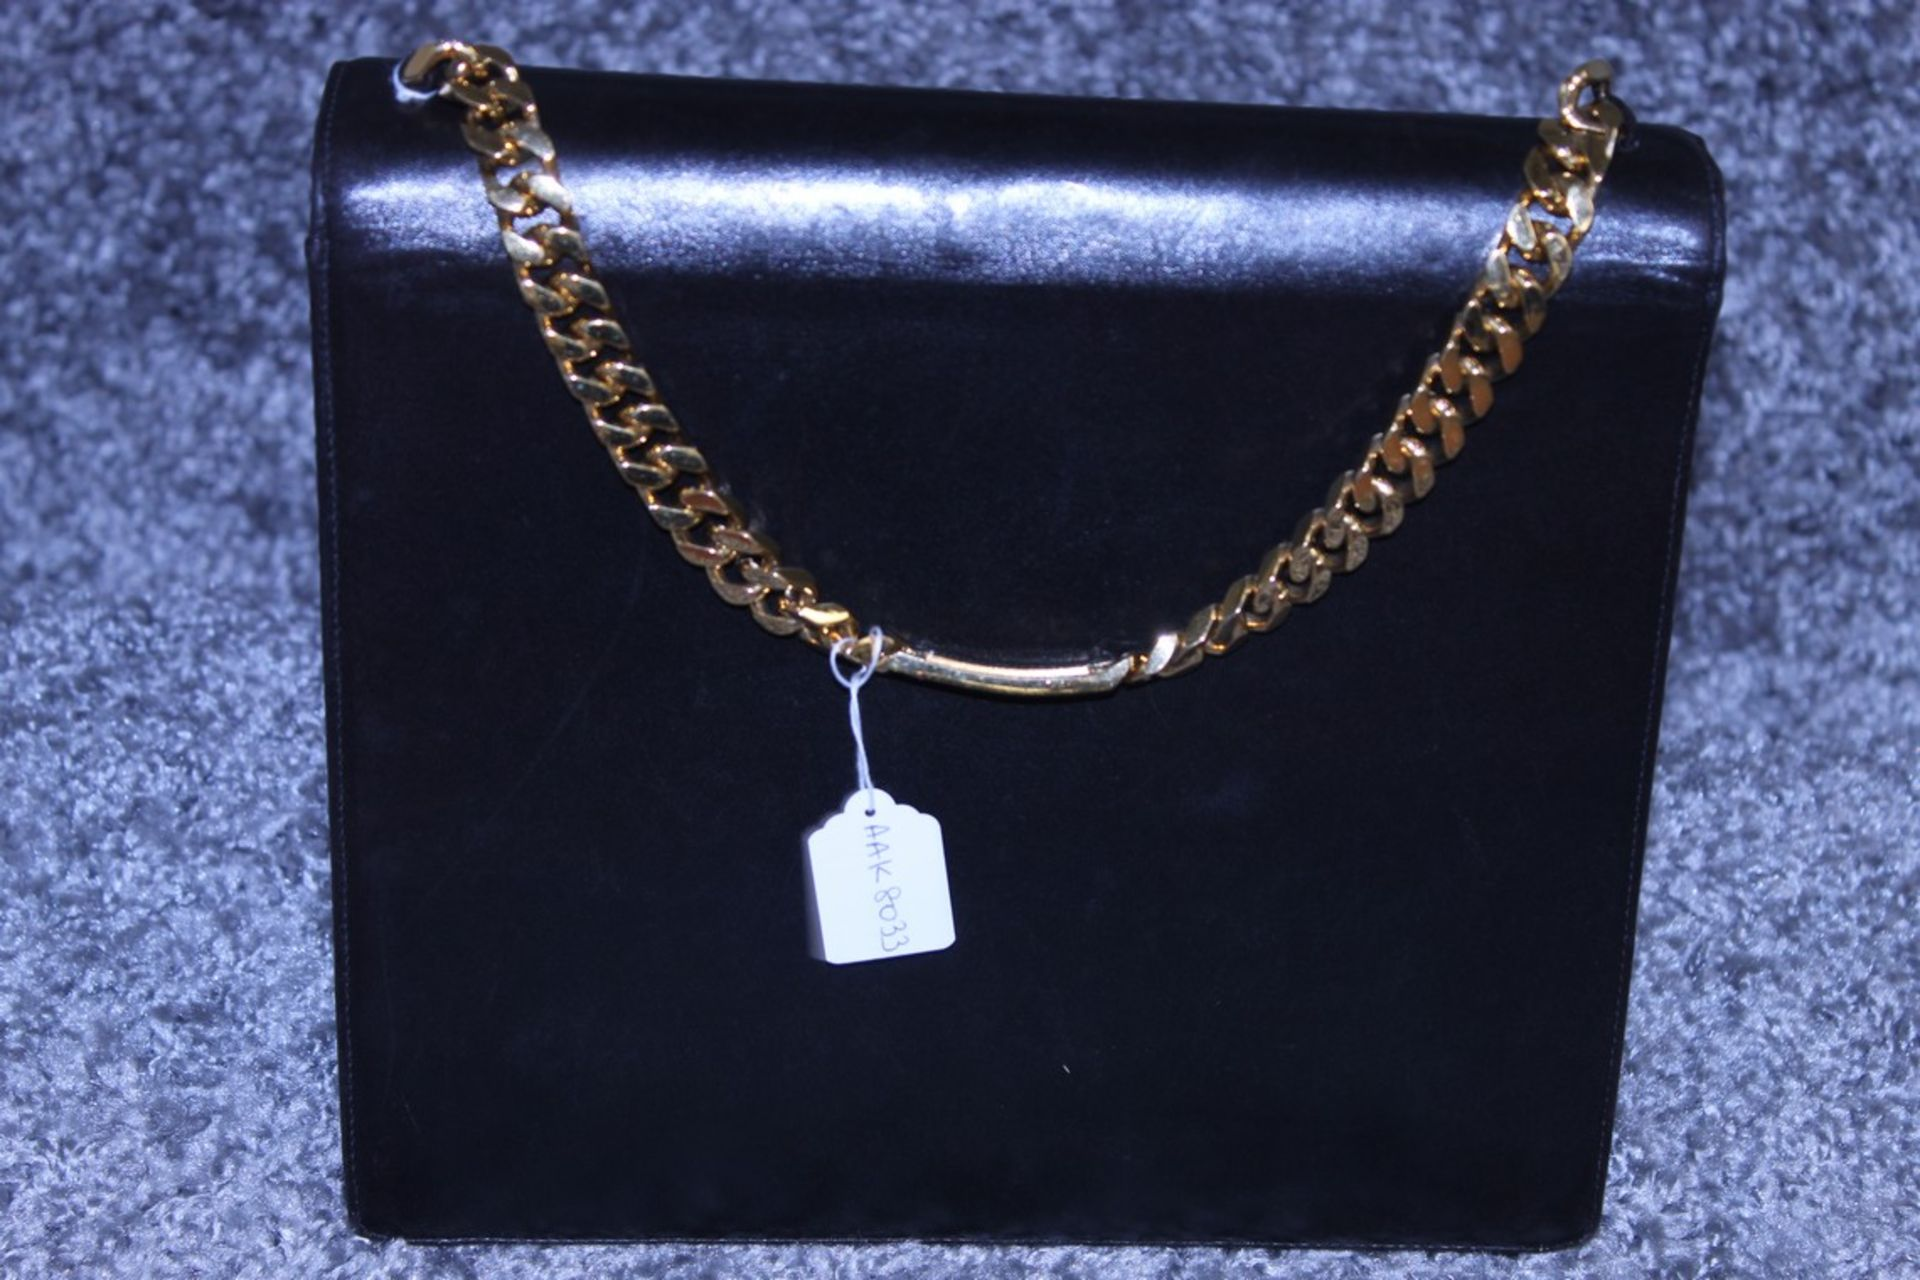 RRP £2000 Chanel Tall Logo Flap Chain Tote Shoulder Bag In Black Leather With Gold Chain Handles - Image 2 of 5